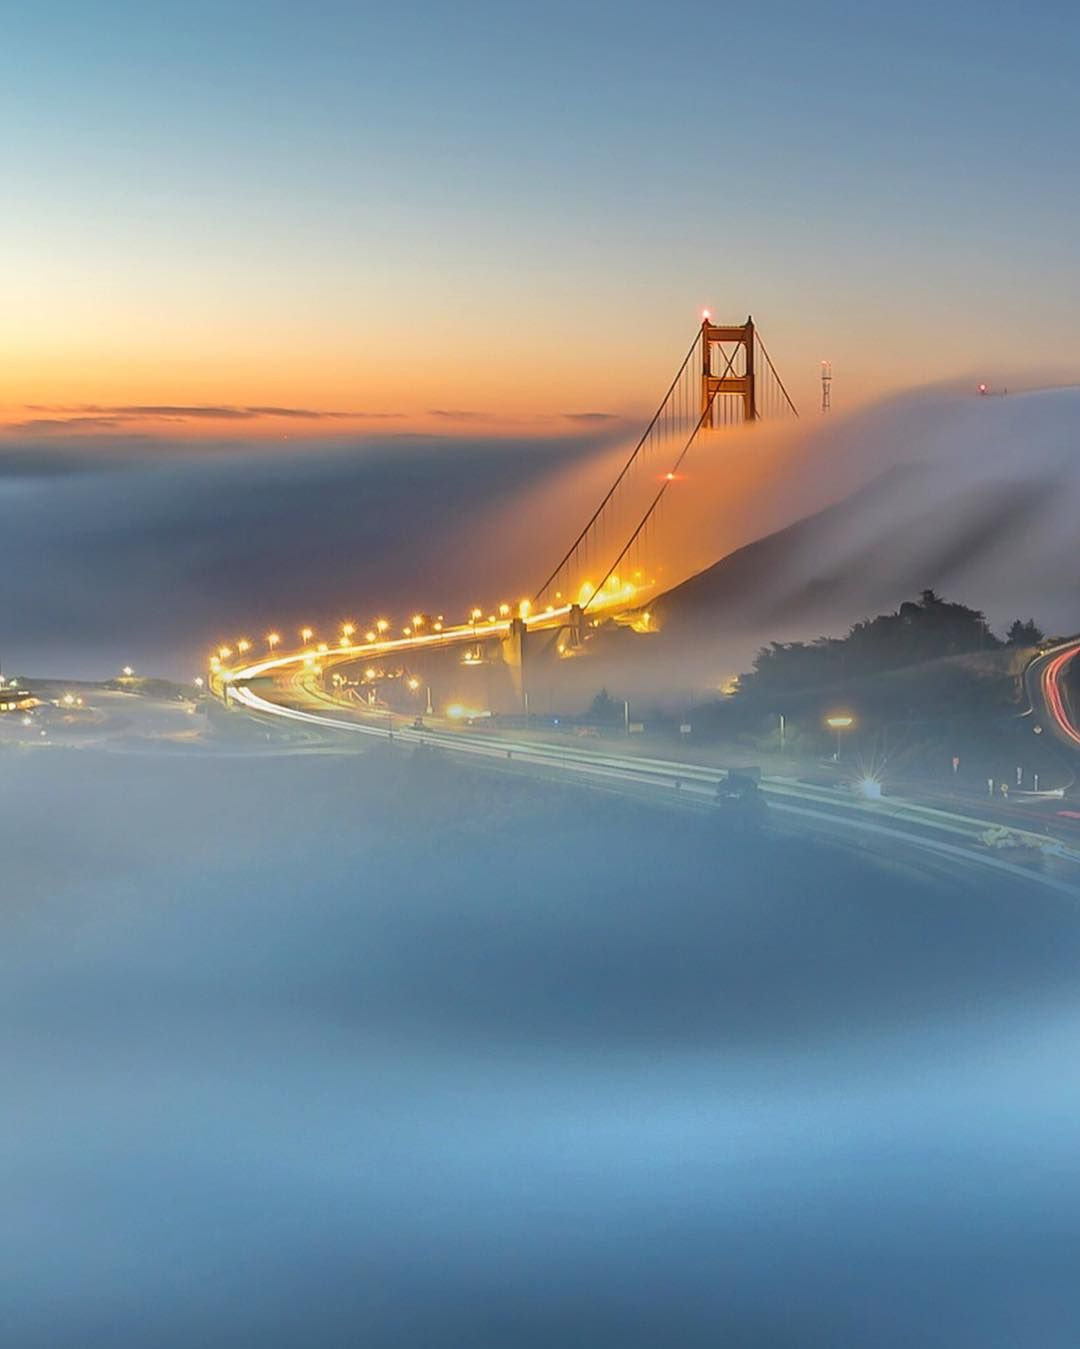 Fog over the Golden Gate Bridge San Francisco California by Ed Francisco #sanfrancisco #sf